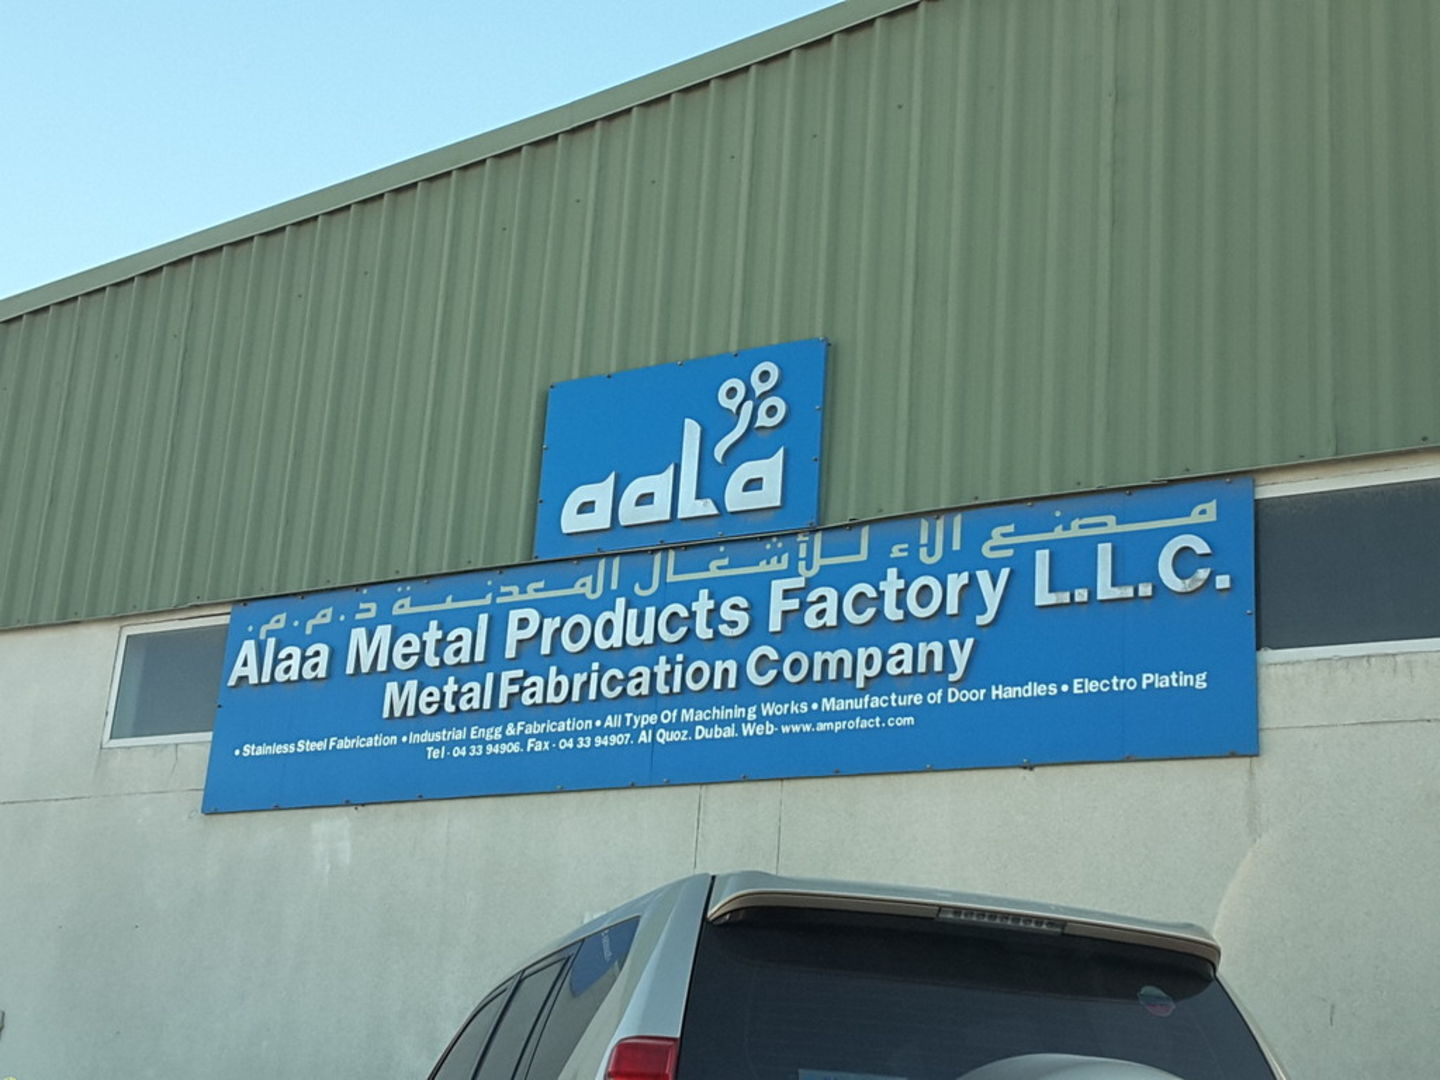 Alaa Metal Products Factory, (Chemical & Metal Companies) in